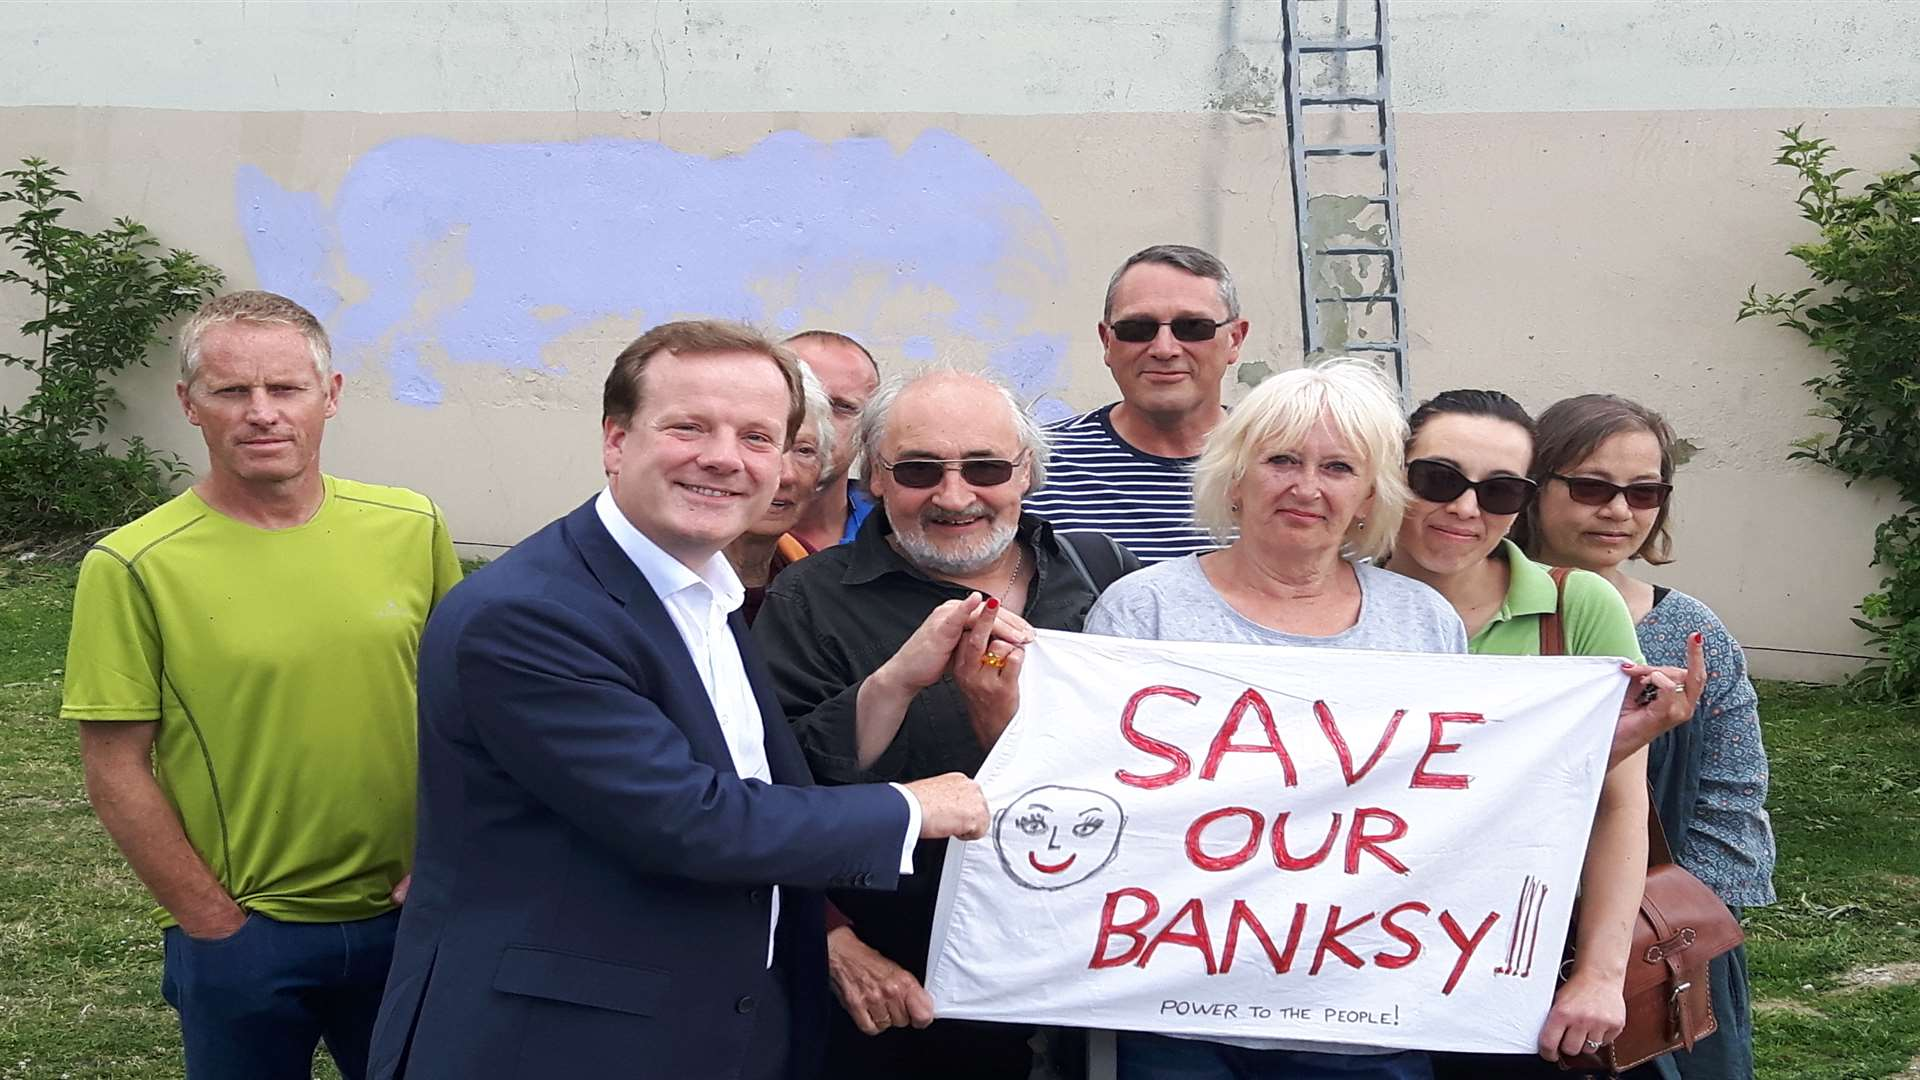 Charlie Elphicke launches his Save our Banksy campaign at the site of the artwork on the corner of Townwall Street and York Street, Dover